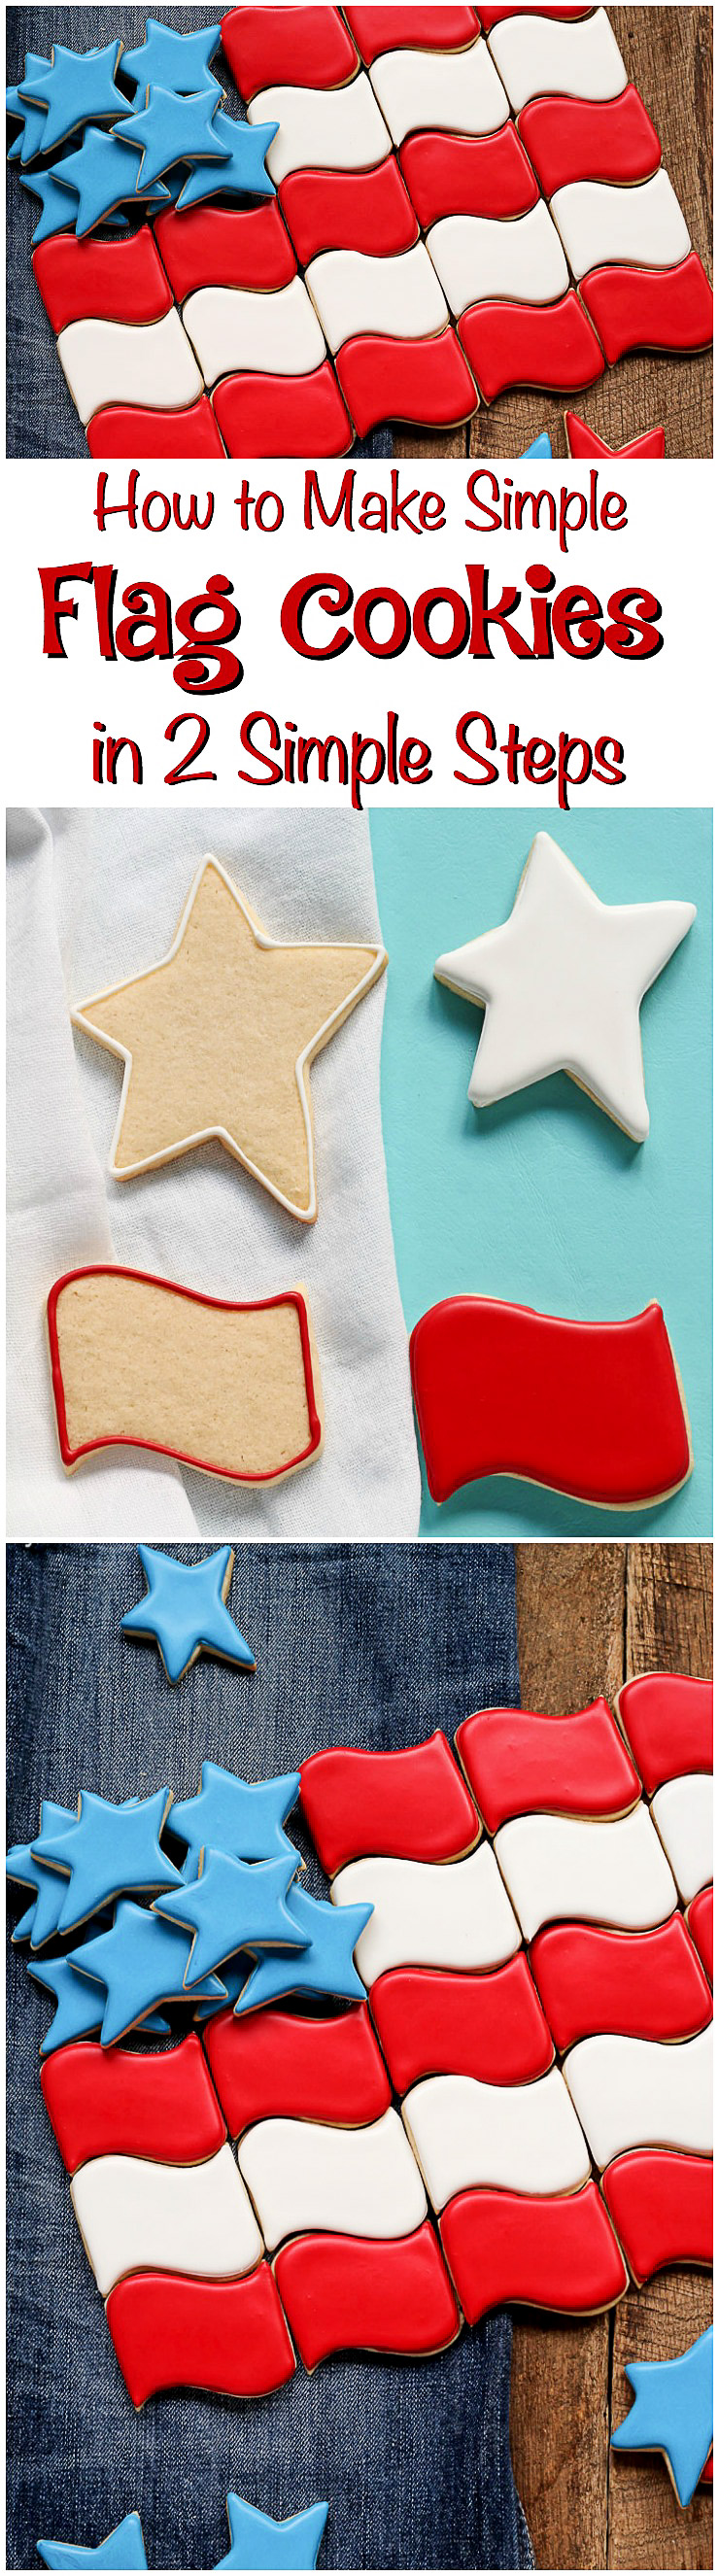 How to Make Simple Flag Cookies with 2 Easy Steps | The Bearfoot Baker